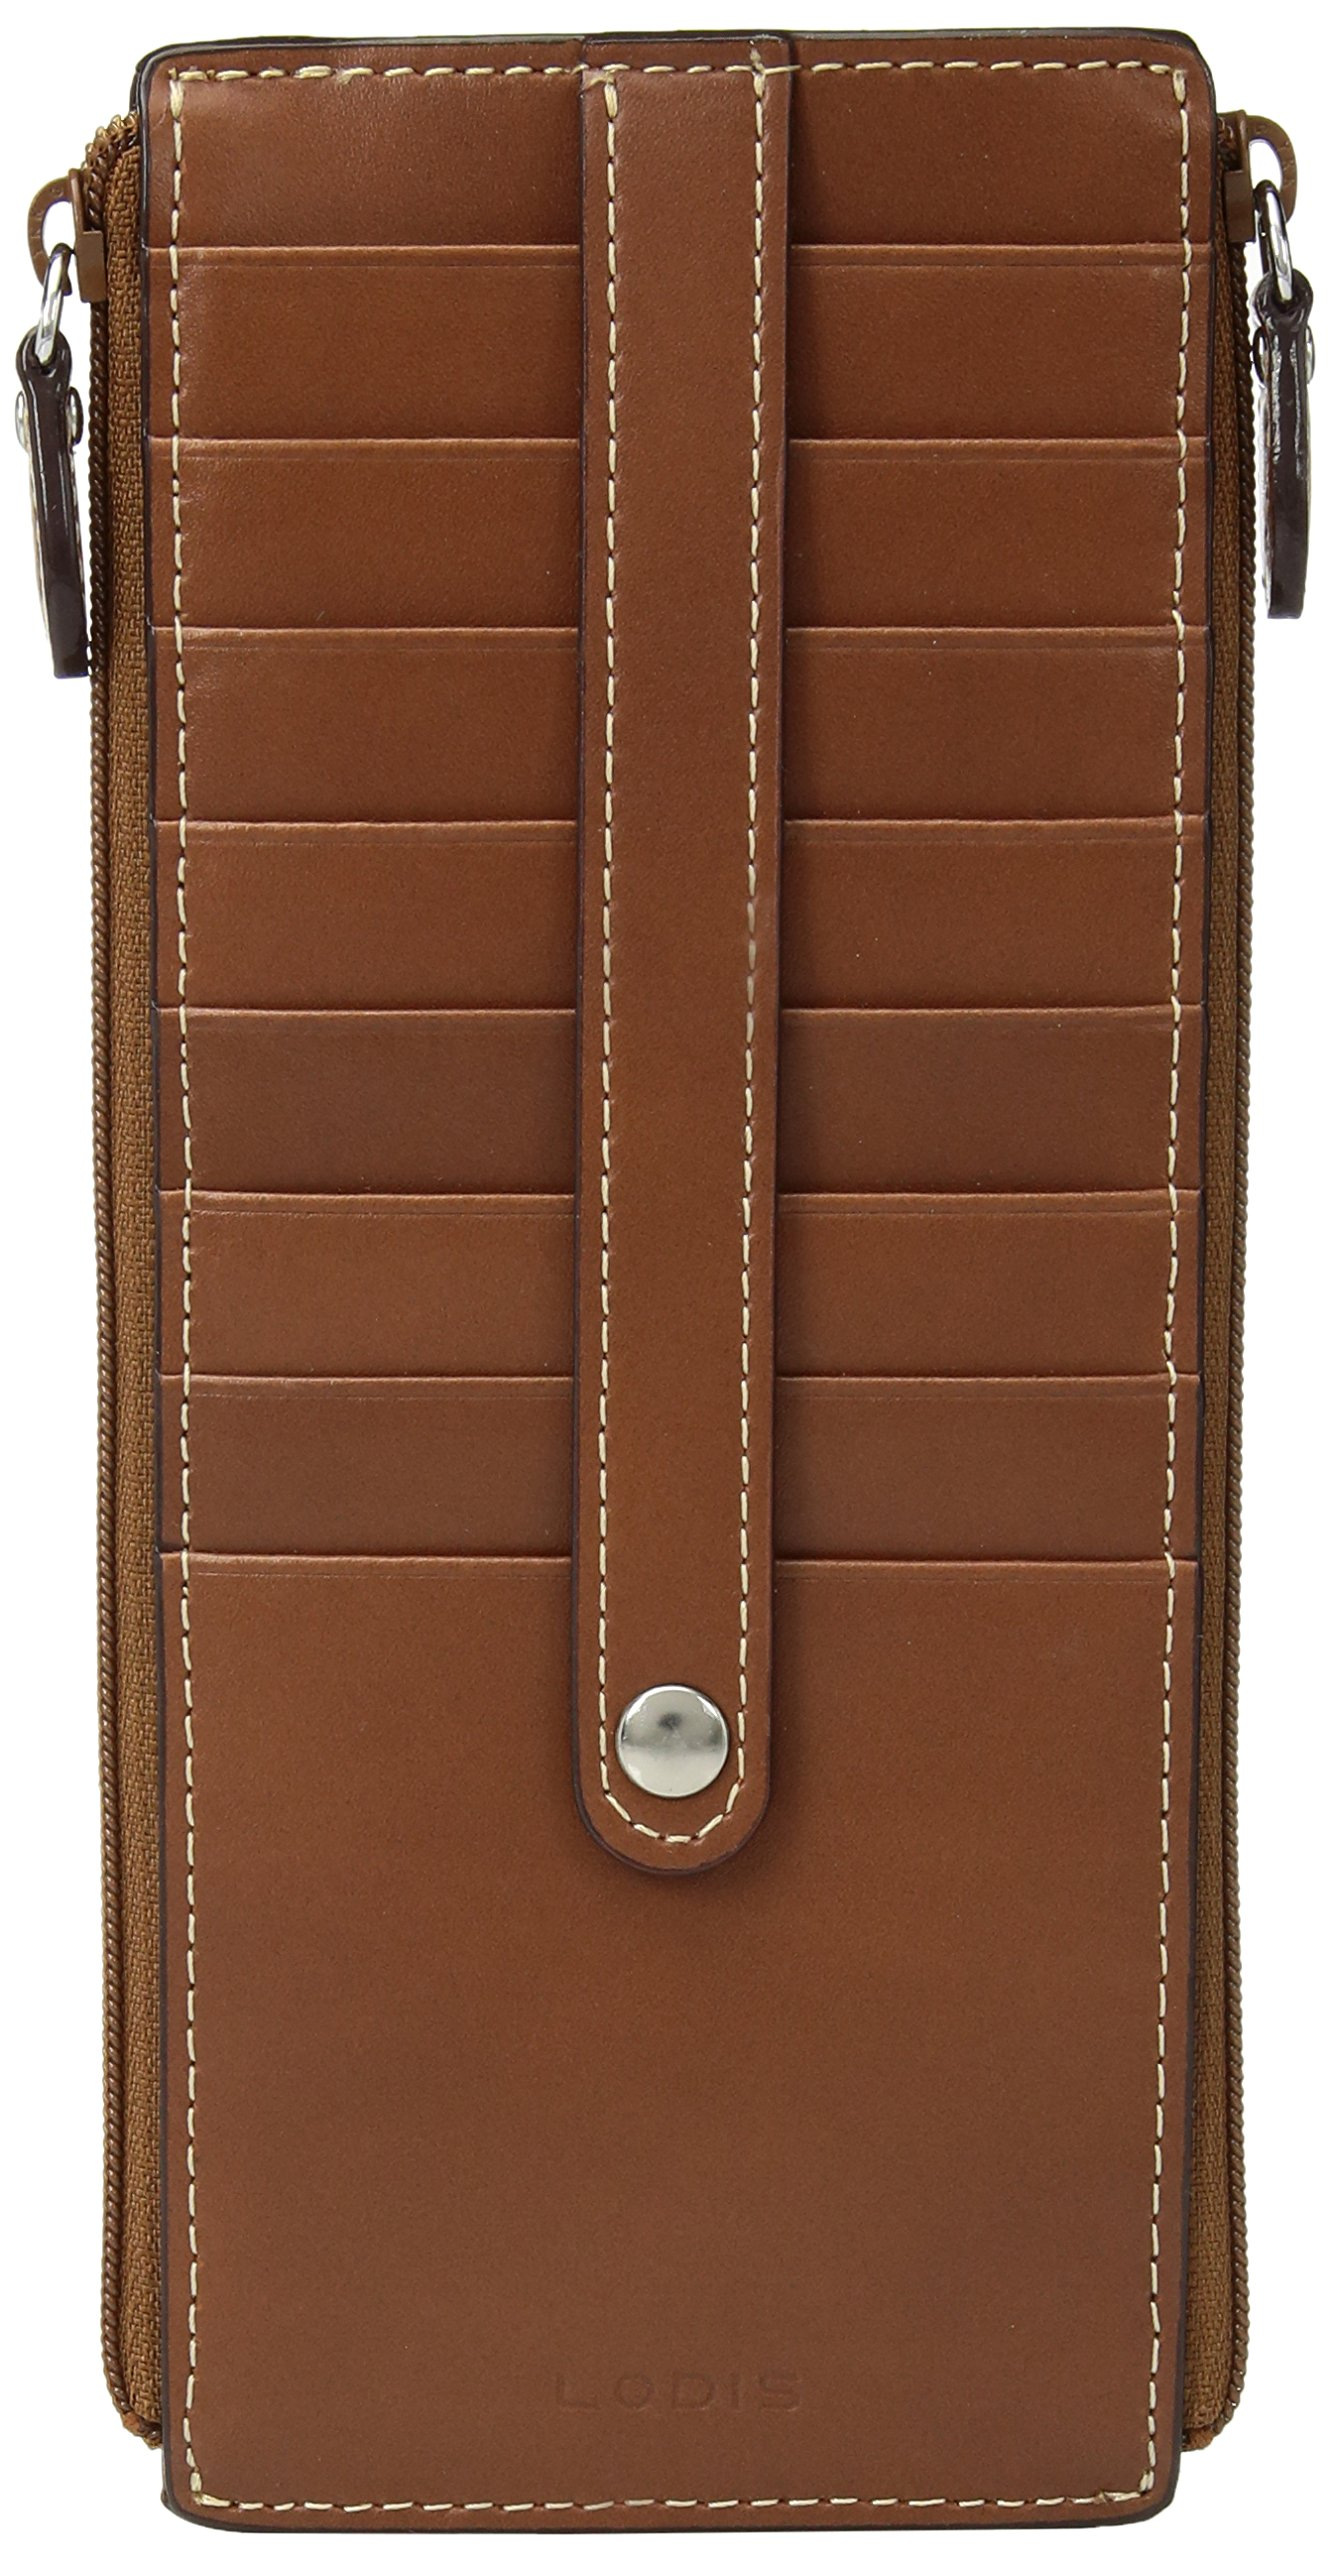 Lodis Audrey RFID Joan Double Zip Card Case, sequoia/papaya